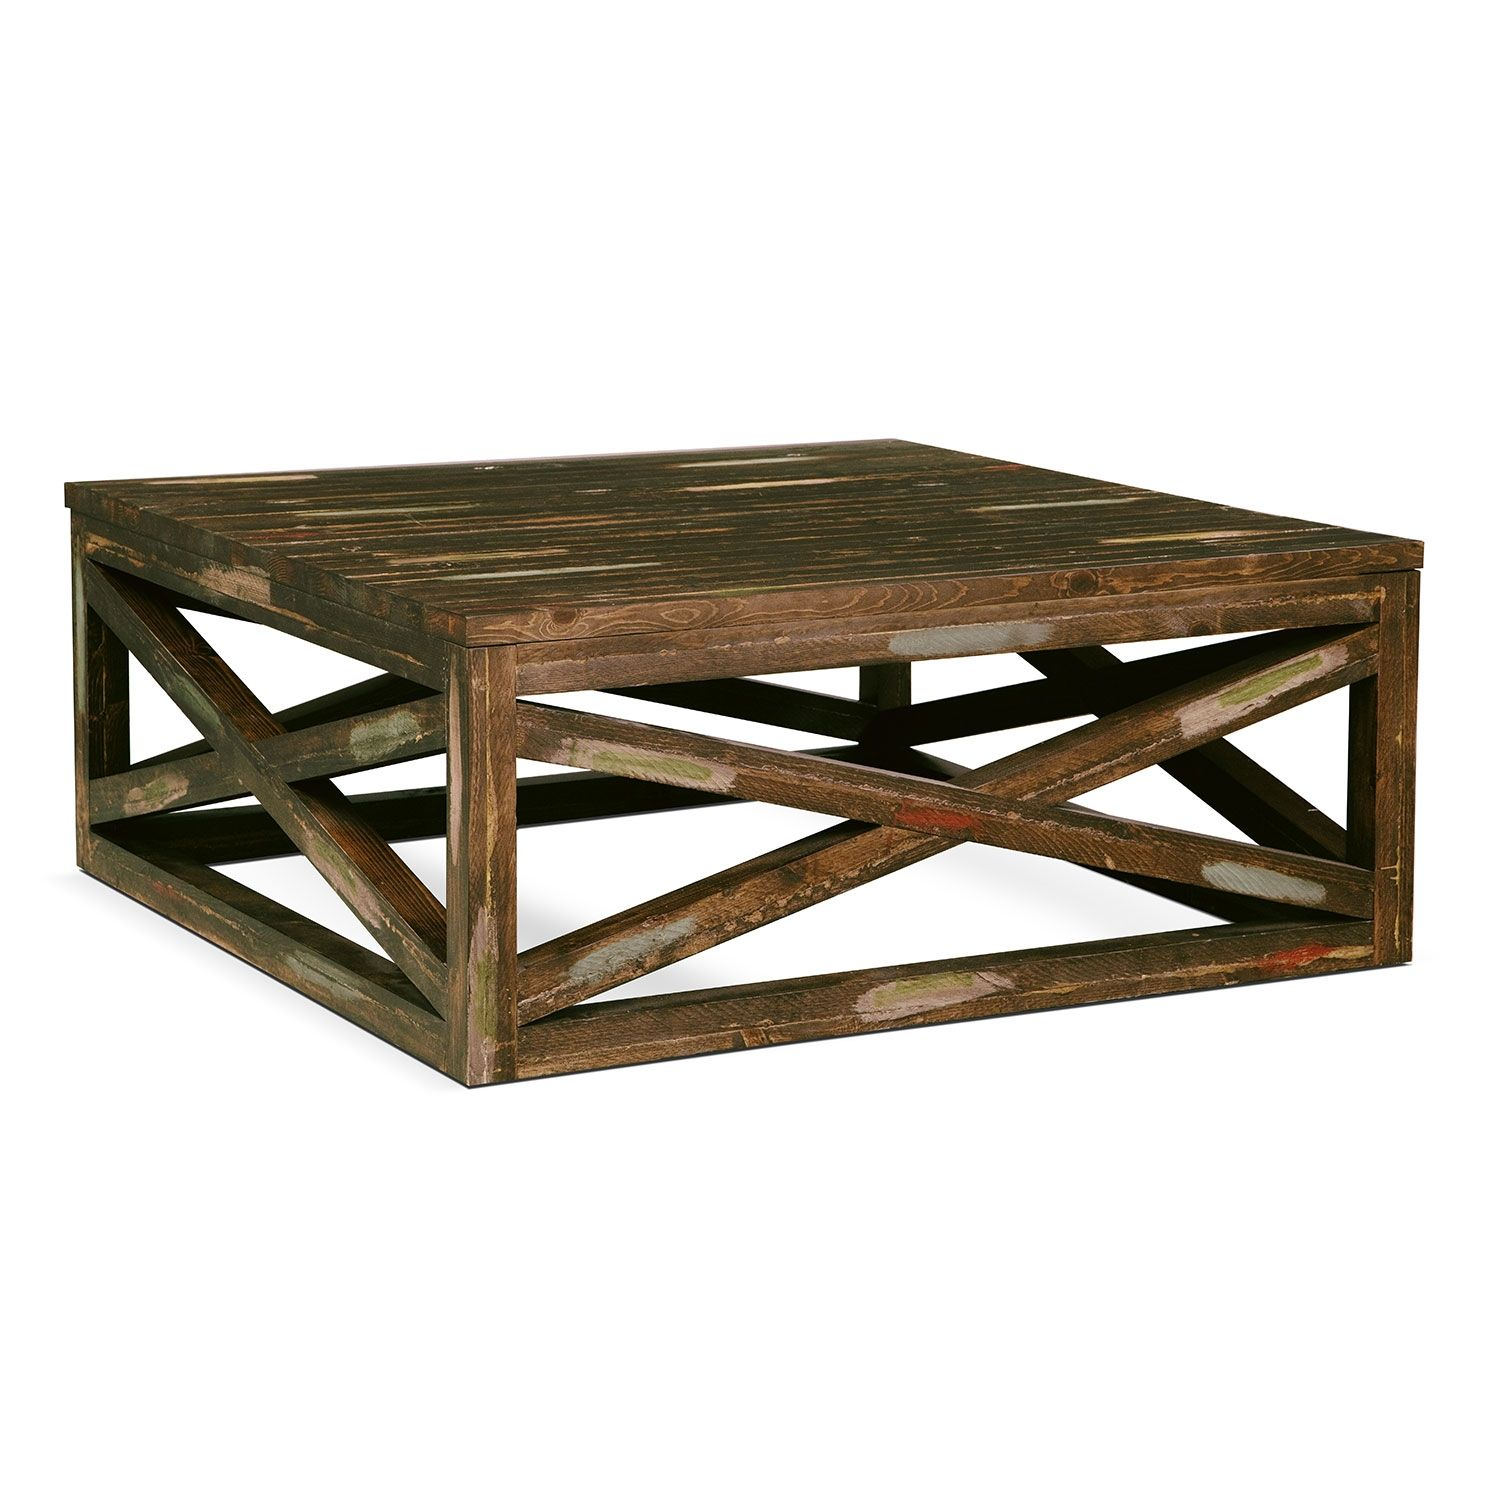 For anyone that loves reclaimed wood and rustic accents Accent